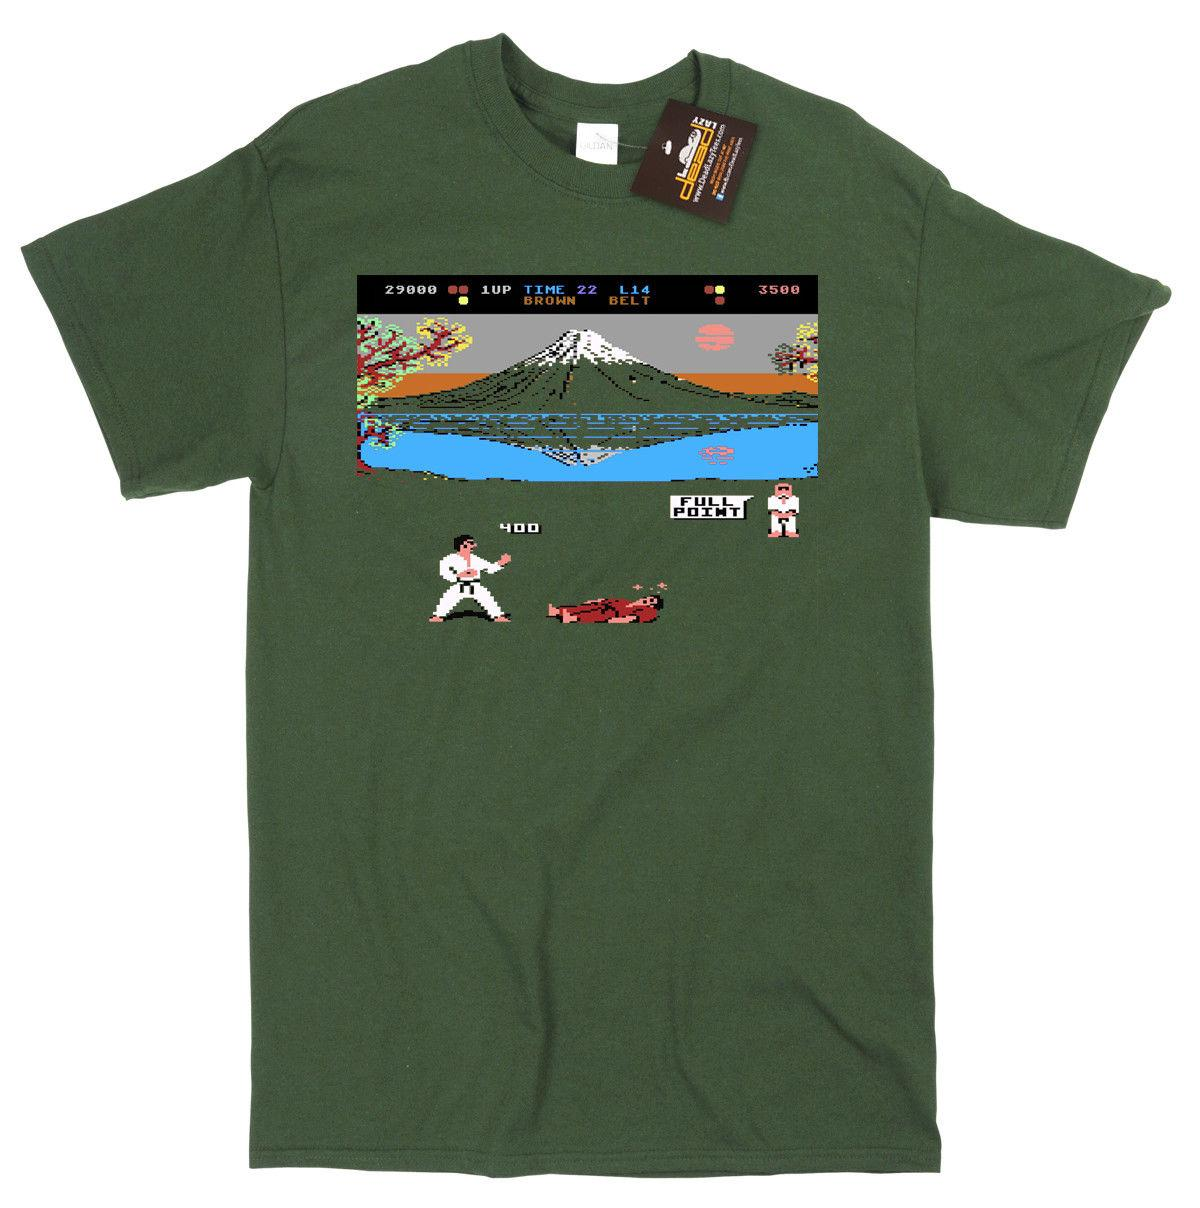 International Karate inspired Game T-shirt - Commodore 64 Spectrum Gaming  C64 Funny free shipping Tshirt top